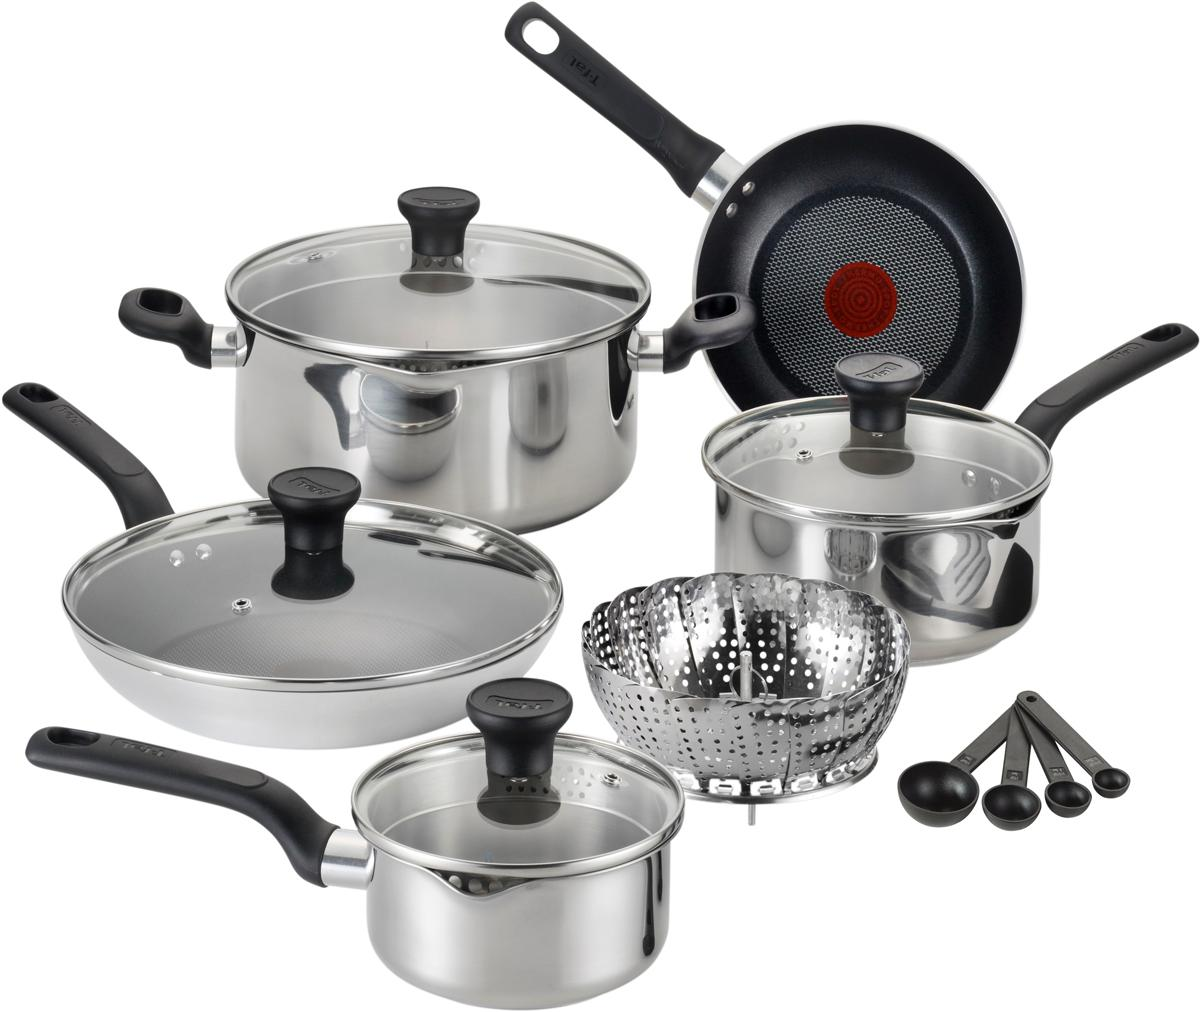 T Fal Excite Stainless Steel 14 Piece Cookware Set